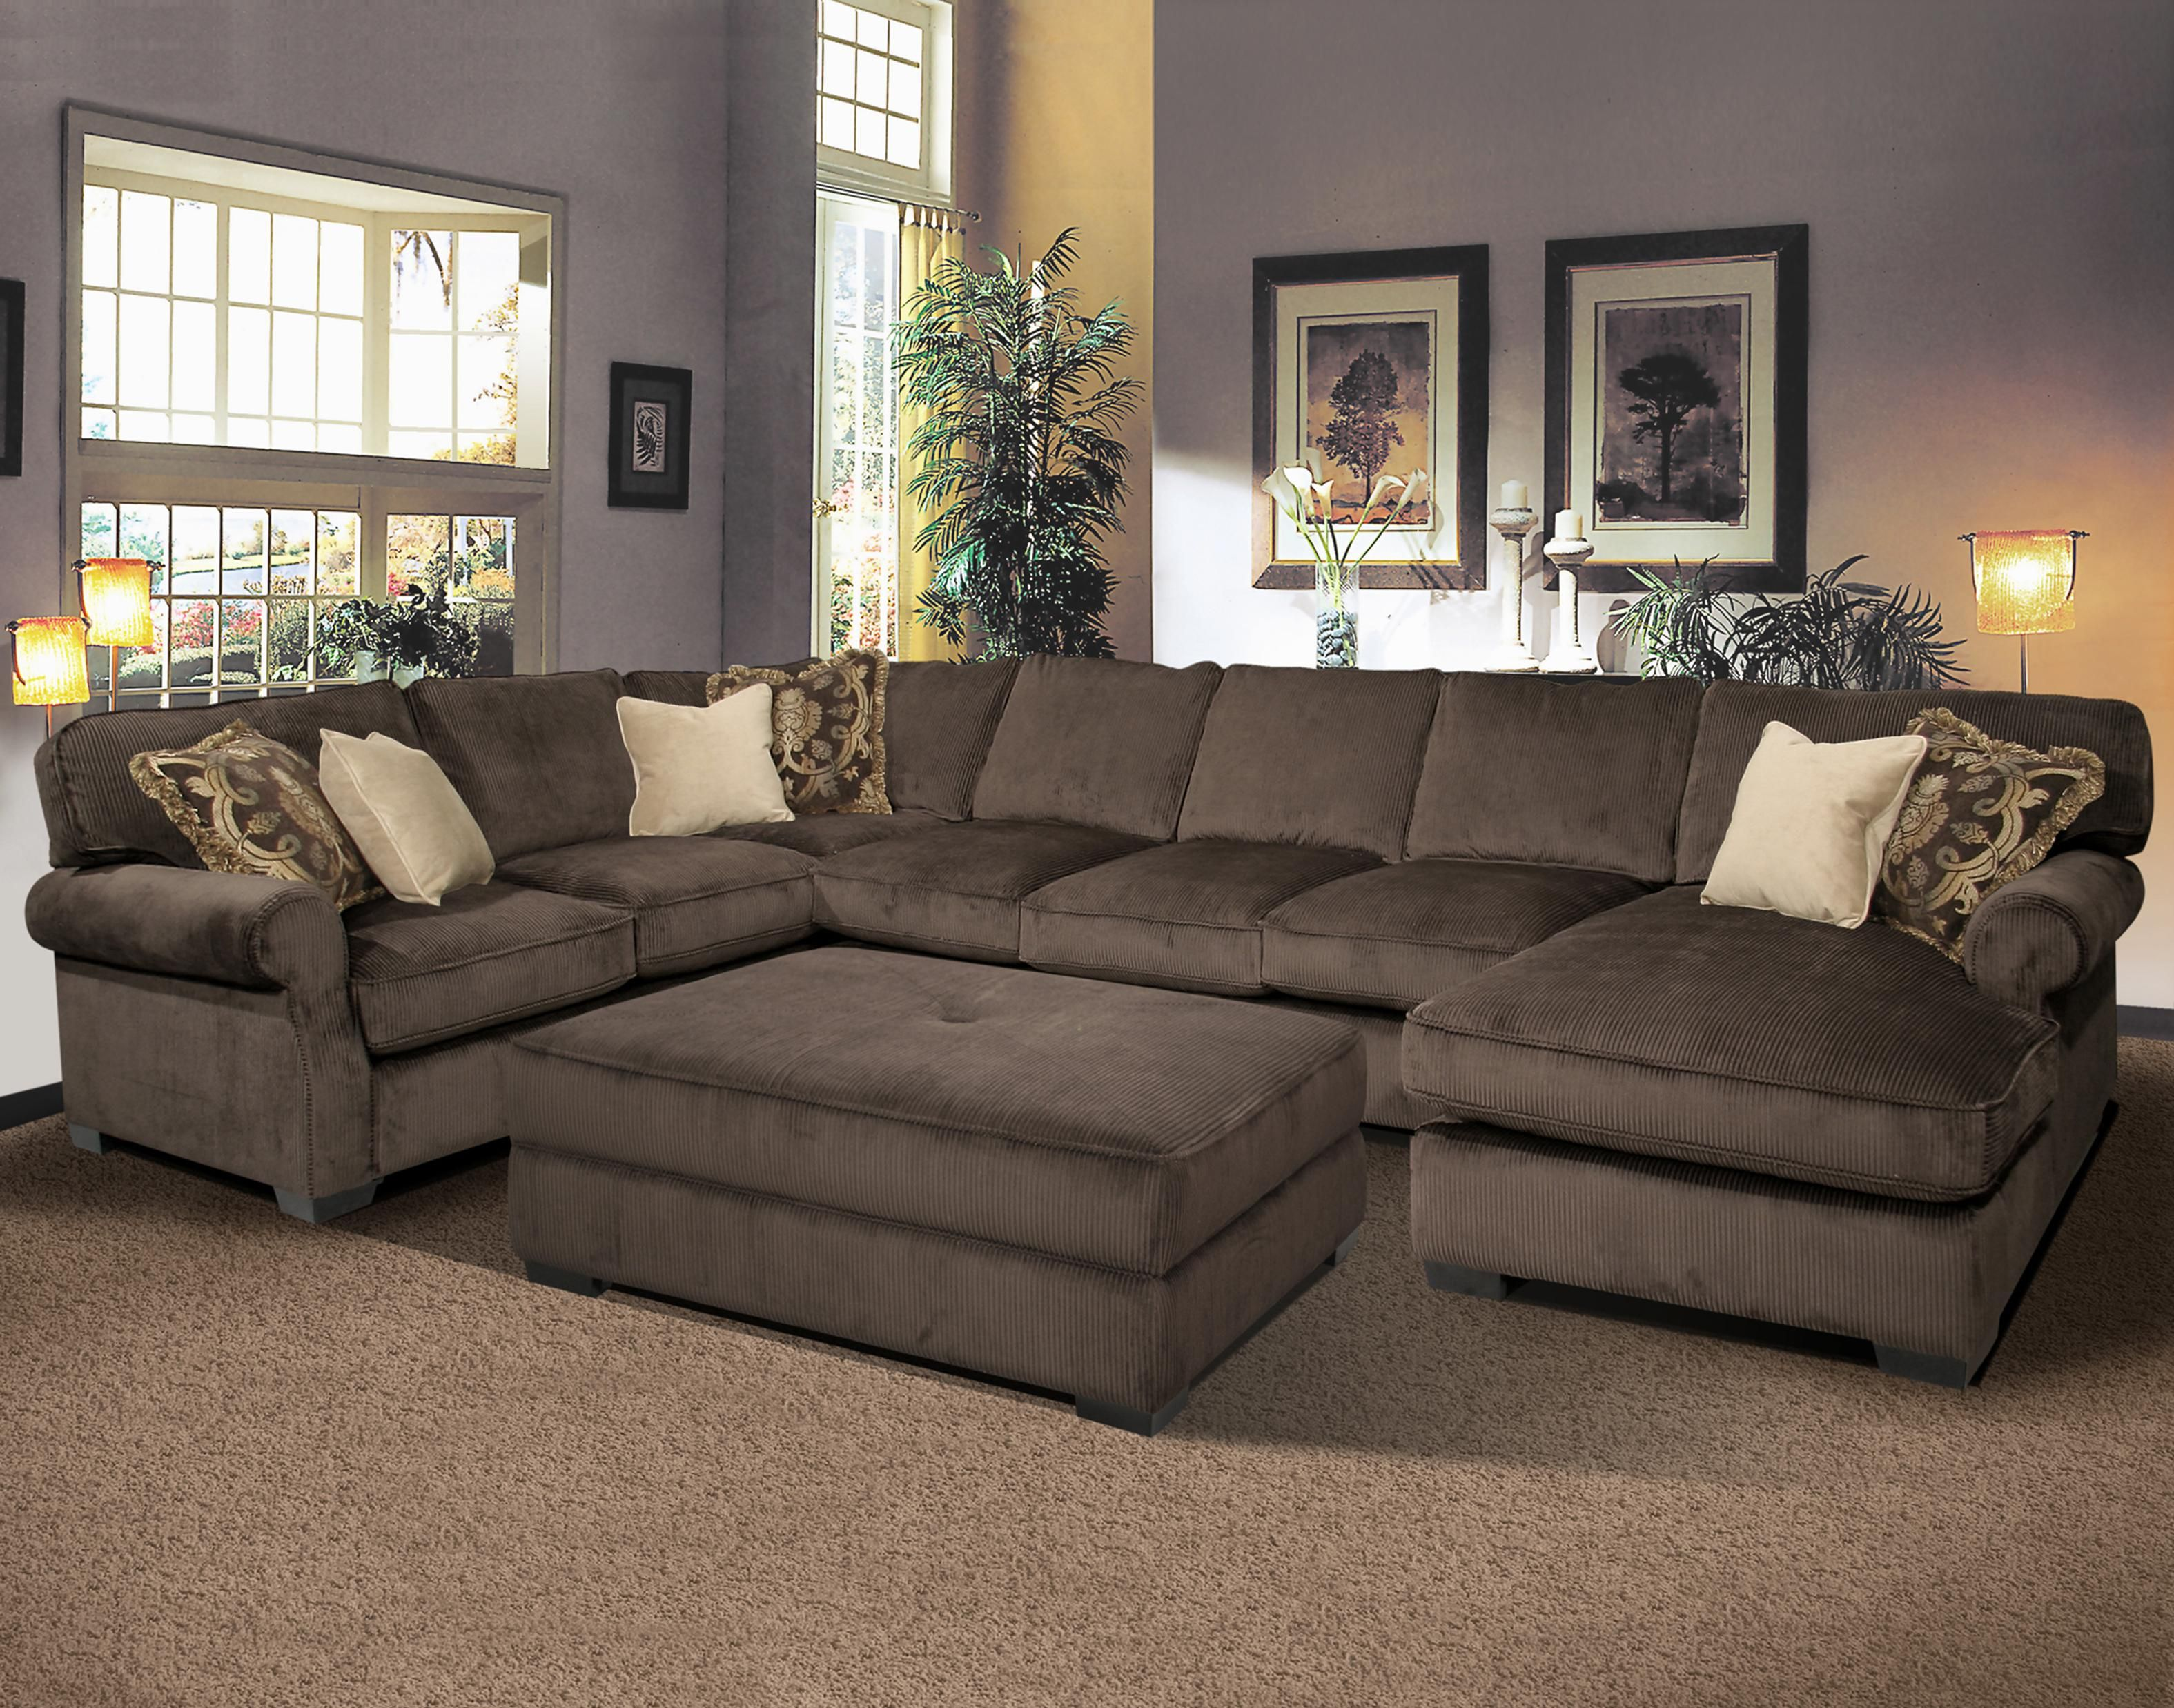 Most comfortable sectional sofa - Most Comfortable Sectional Sofa With Chaise Grand Island Large 7 Seat Sectional Sofa With Right